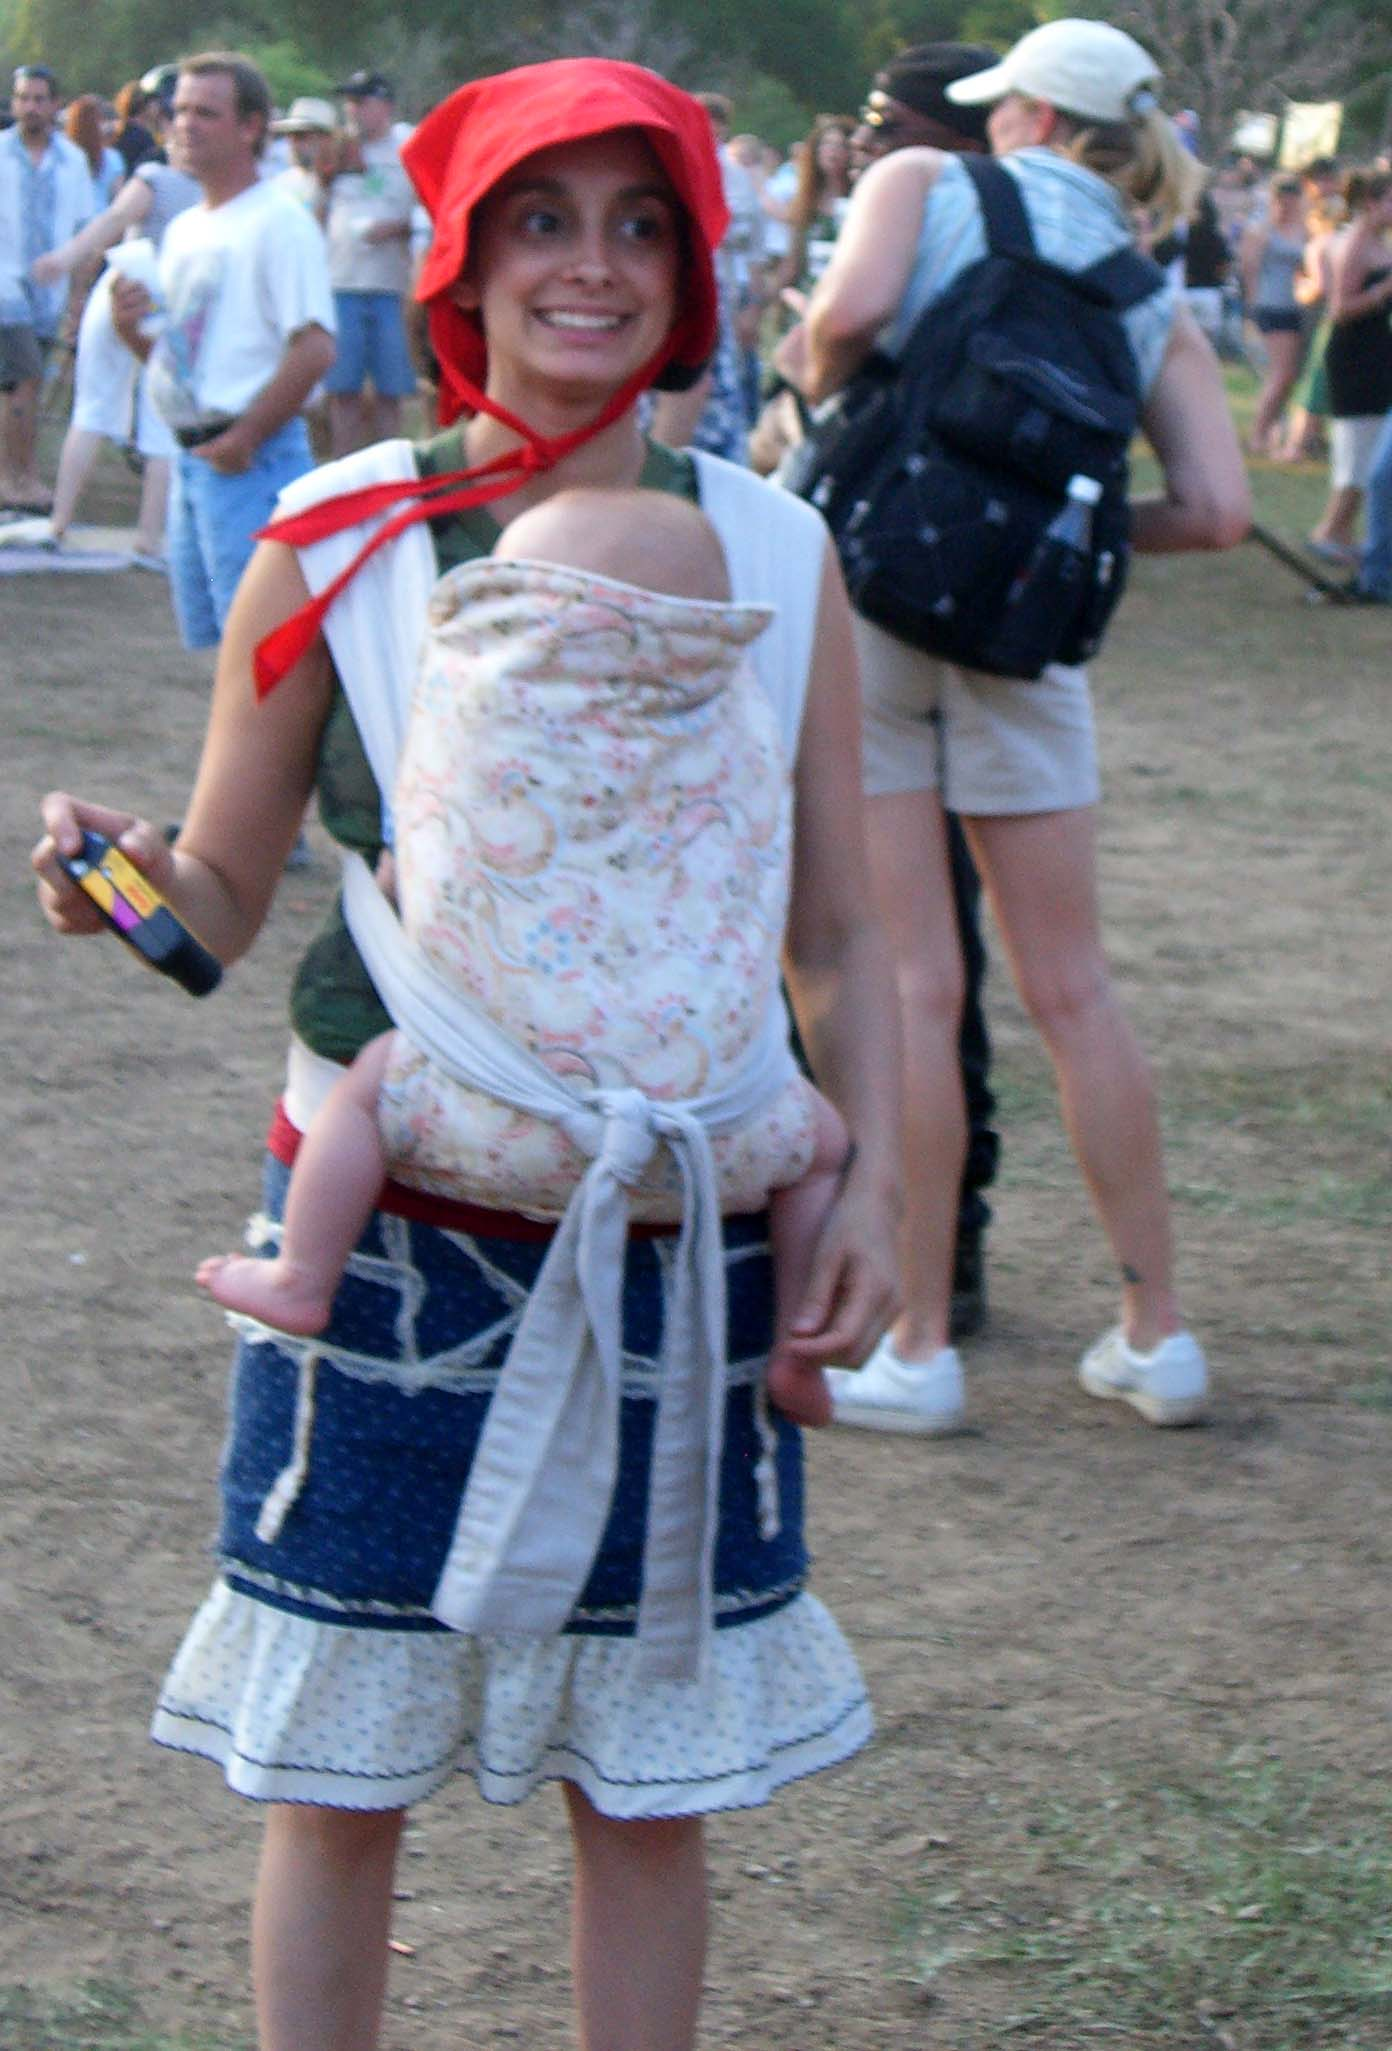 Red Riding Hood with a baby in a sling, Eeyore's Birthday 2007